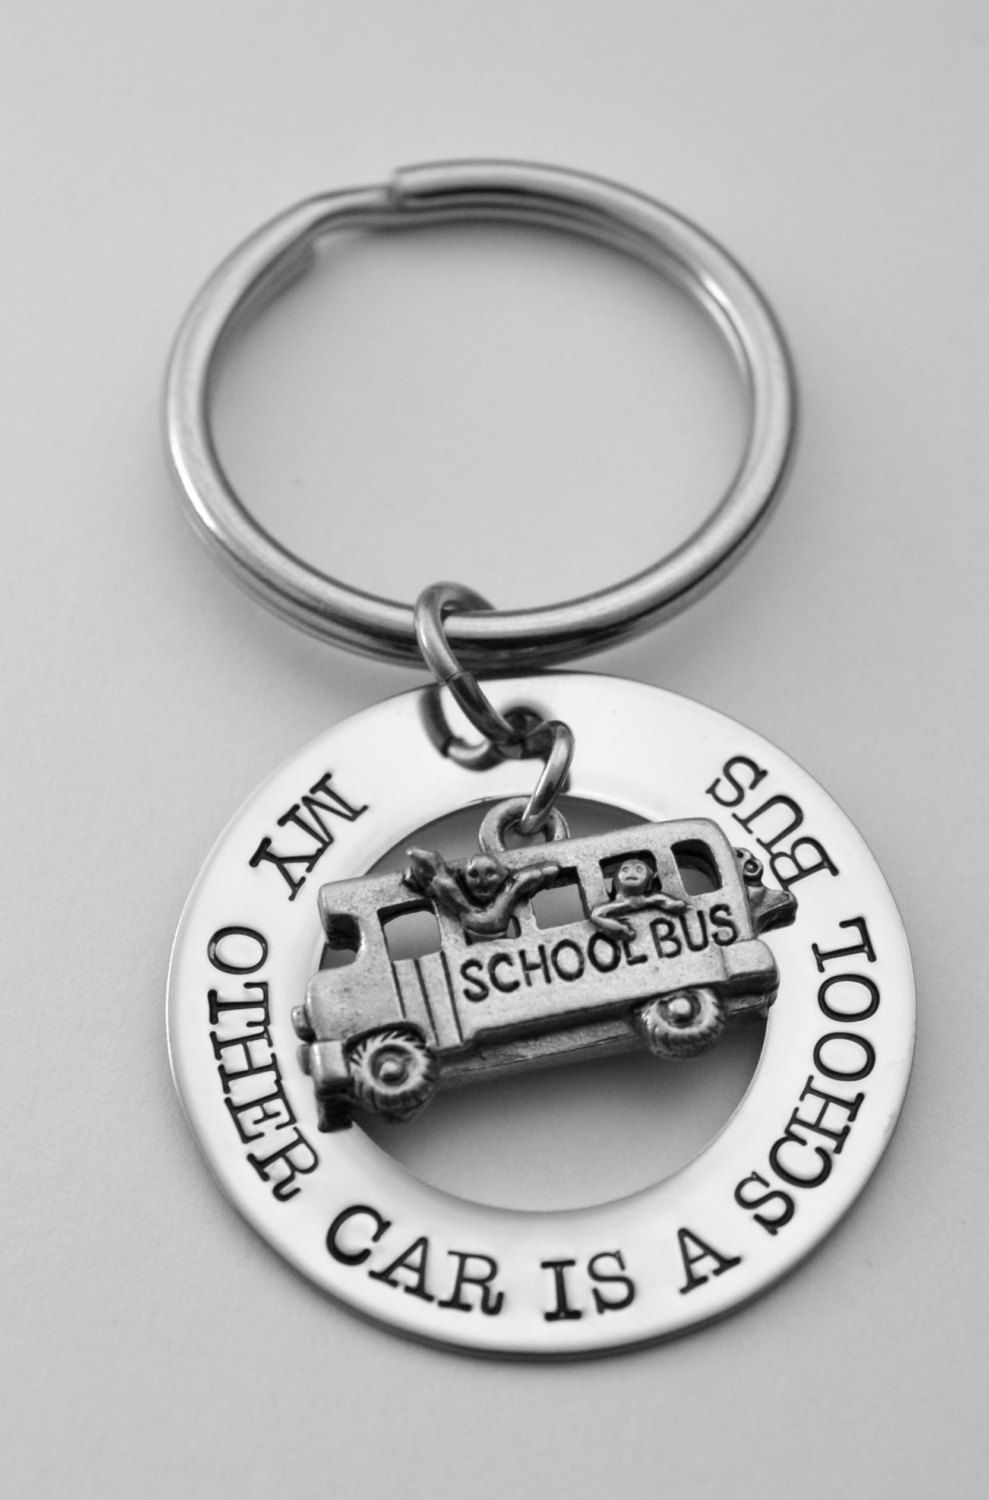 School bus driver key chain bus driver key chain my other car is school bus driver key chain bus driver key chain my other car is a school bus any text that fits stainless steel see all photos solutioingenieria Choice Image